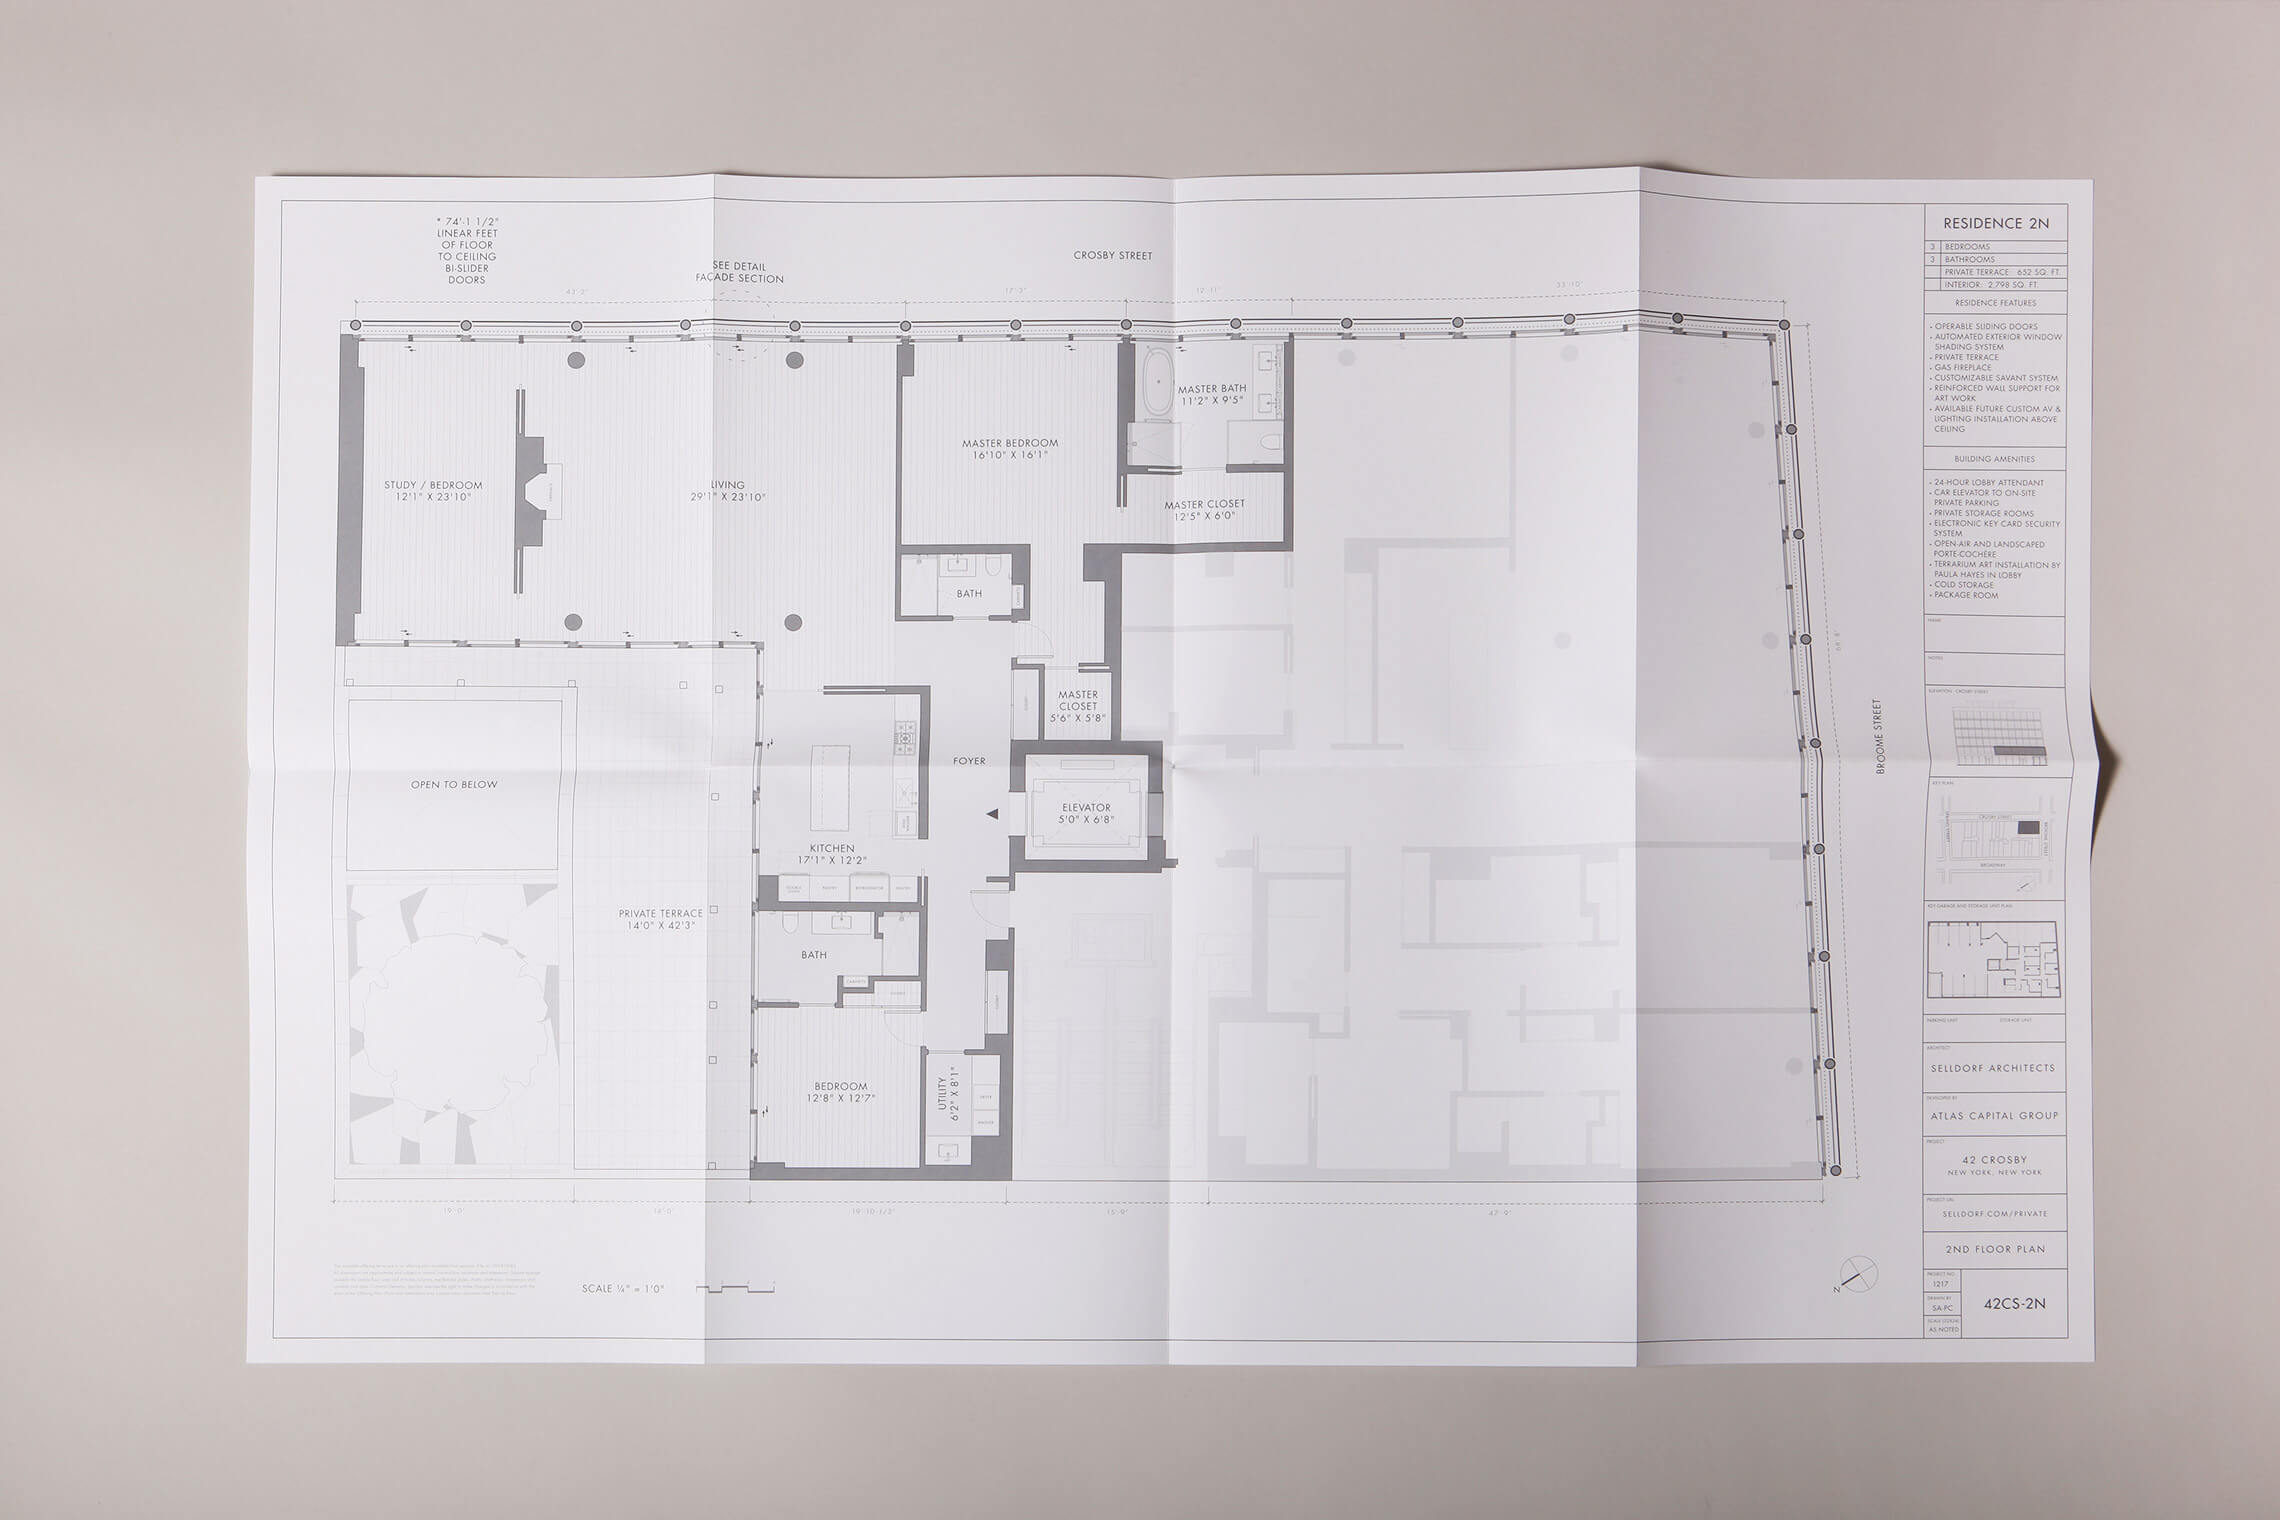 42-crosby-floor-plan-2